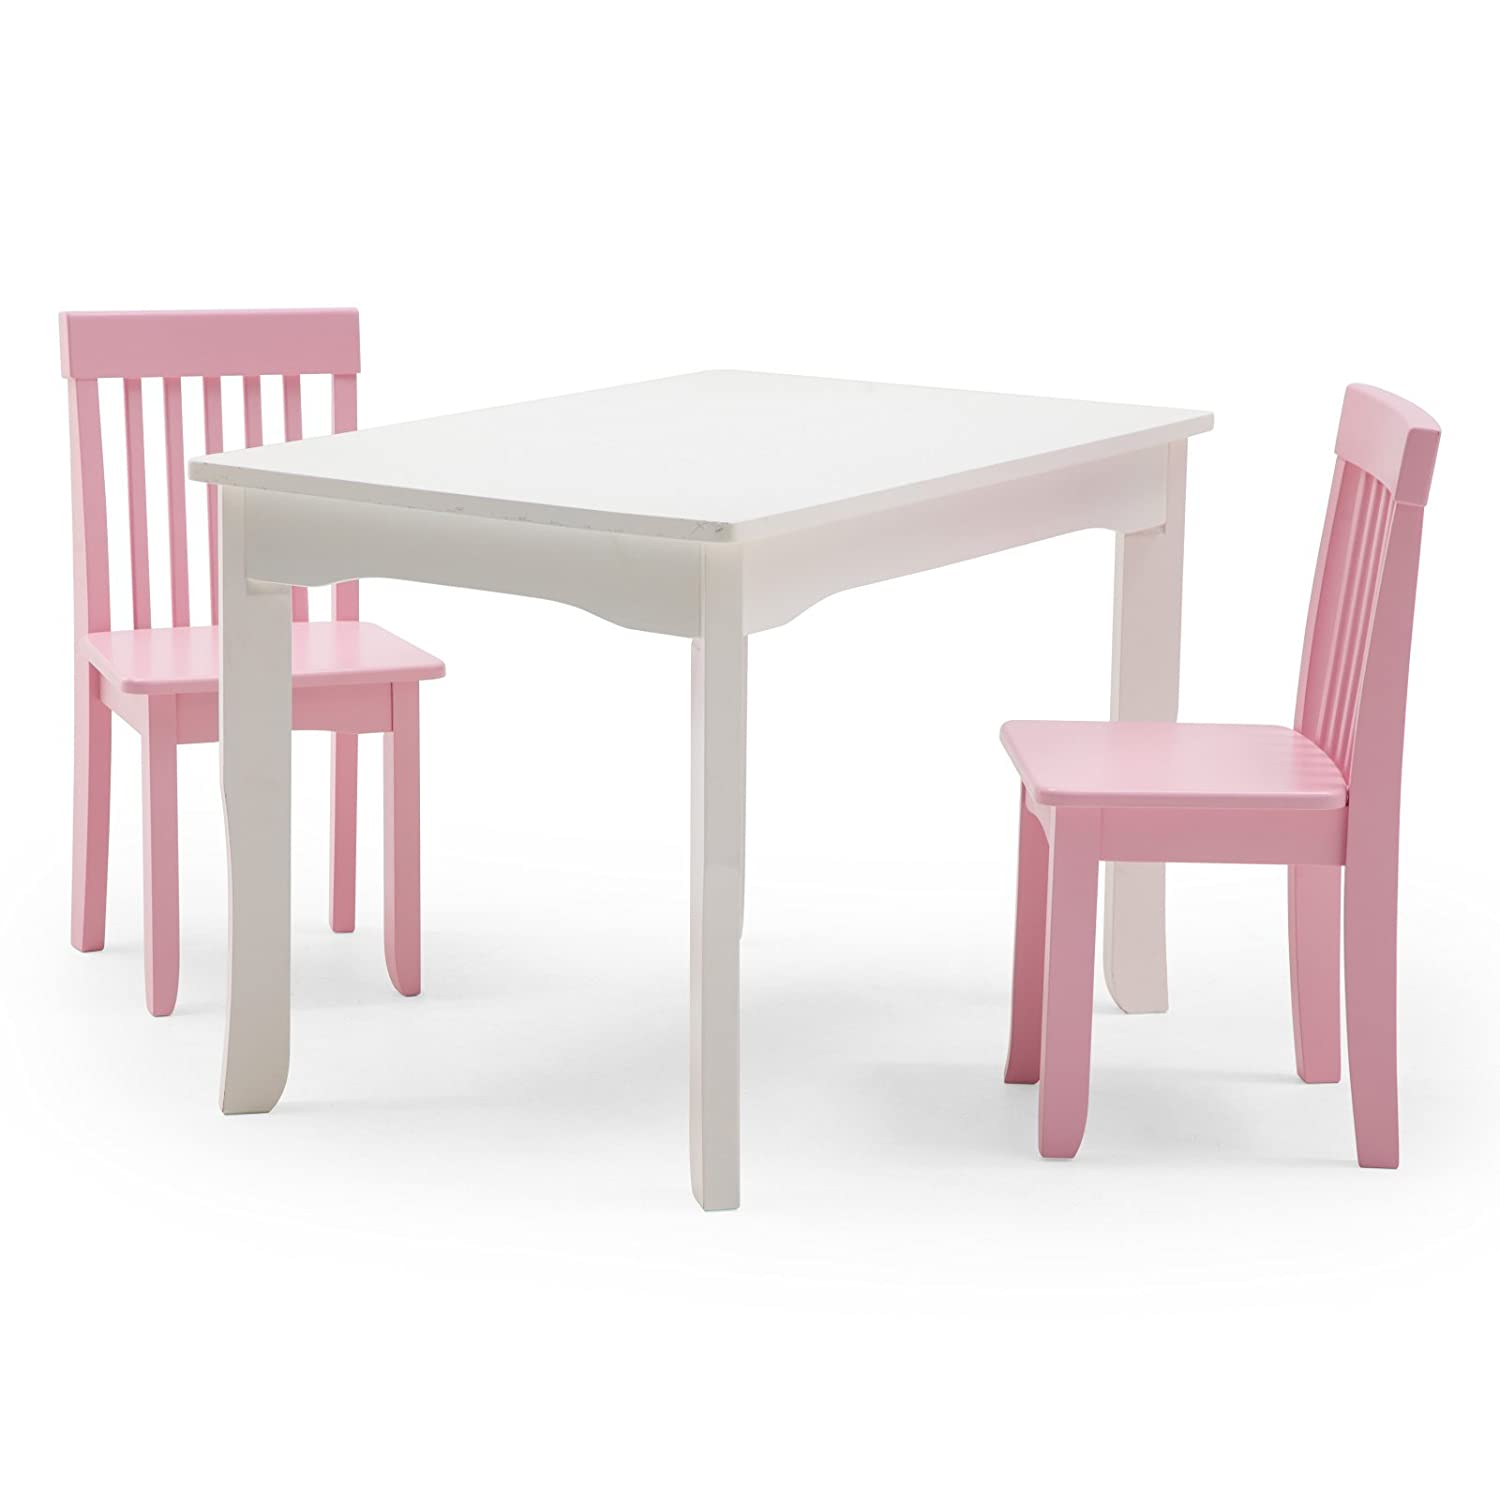 sc 1 st  Amazon.com & Amazon.com: Lipper Mystic Table and Chair Set - Pink: Kitchen u0026 Dining